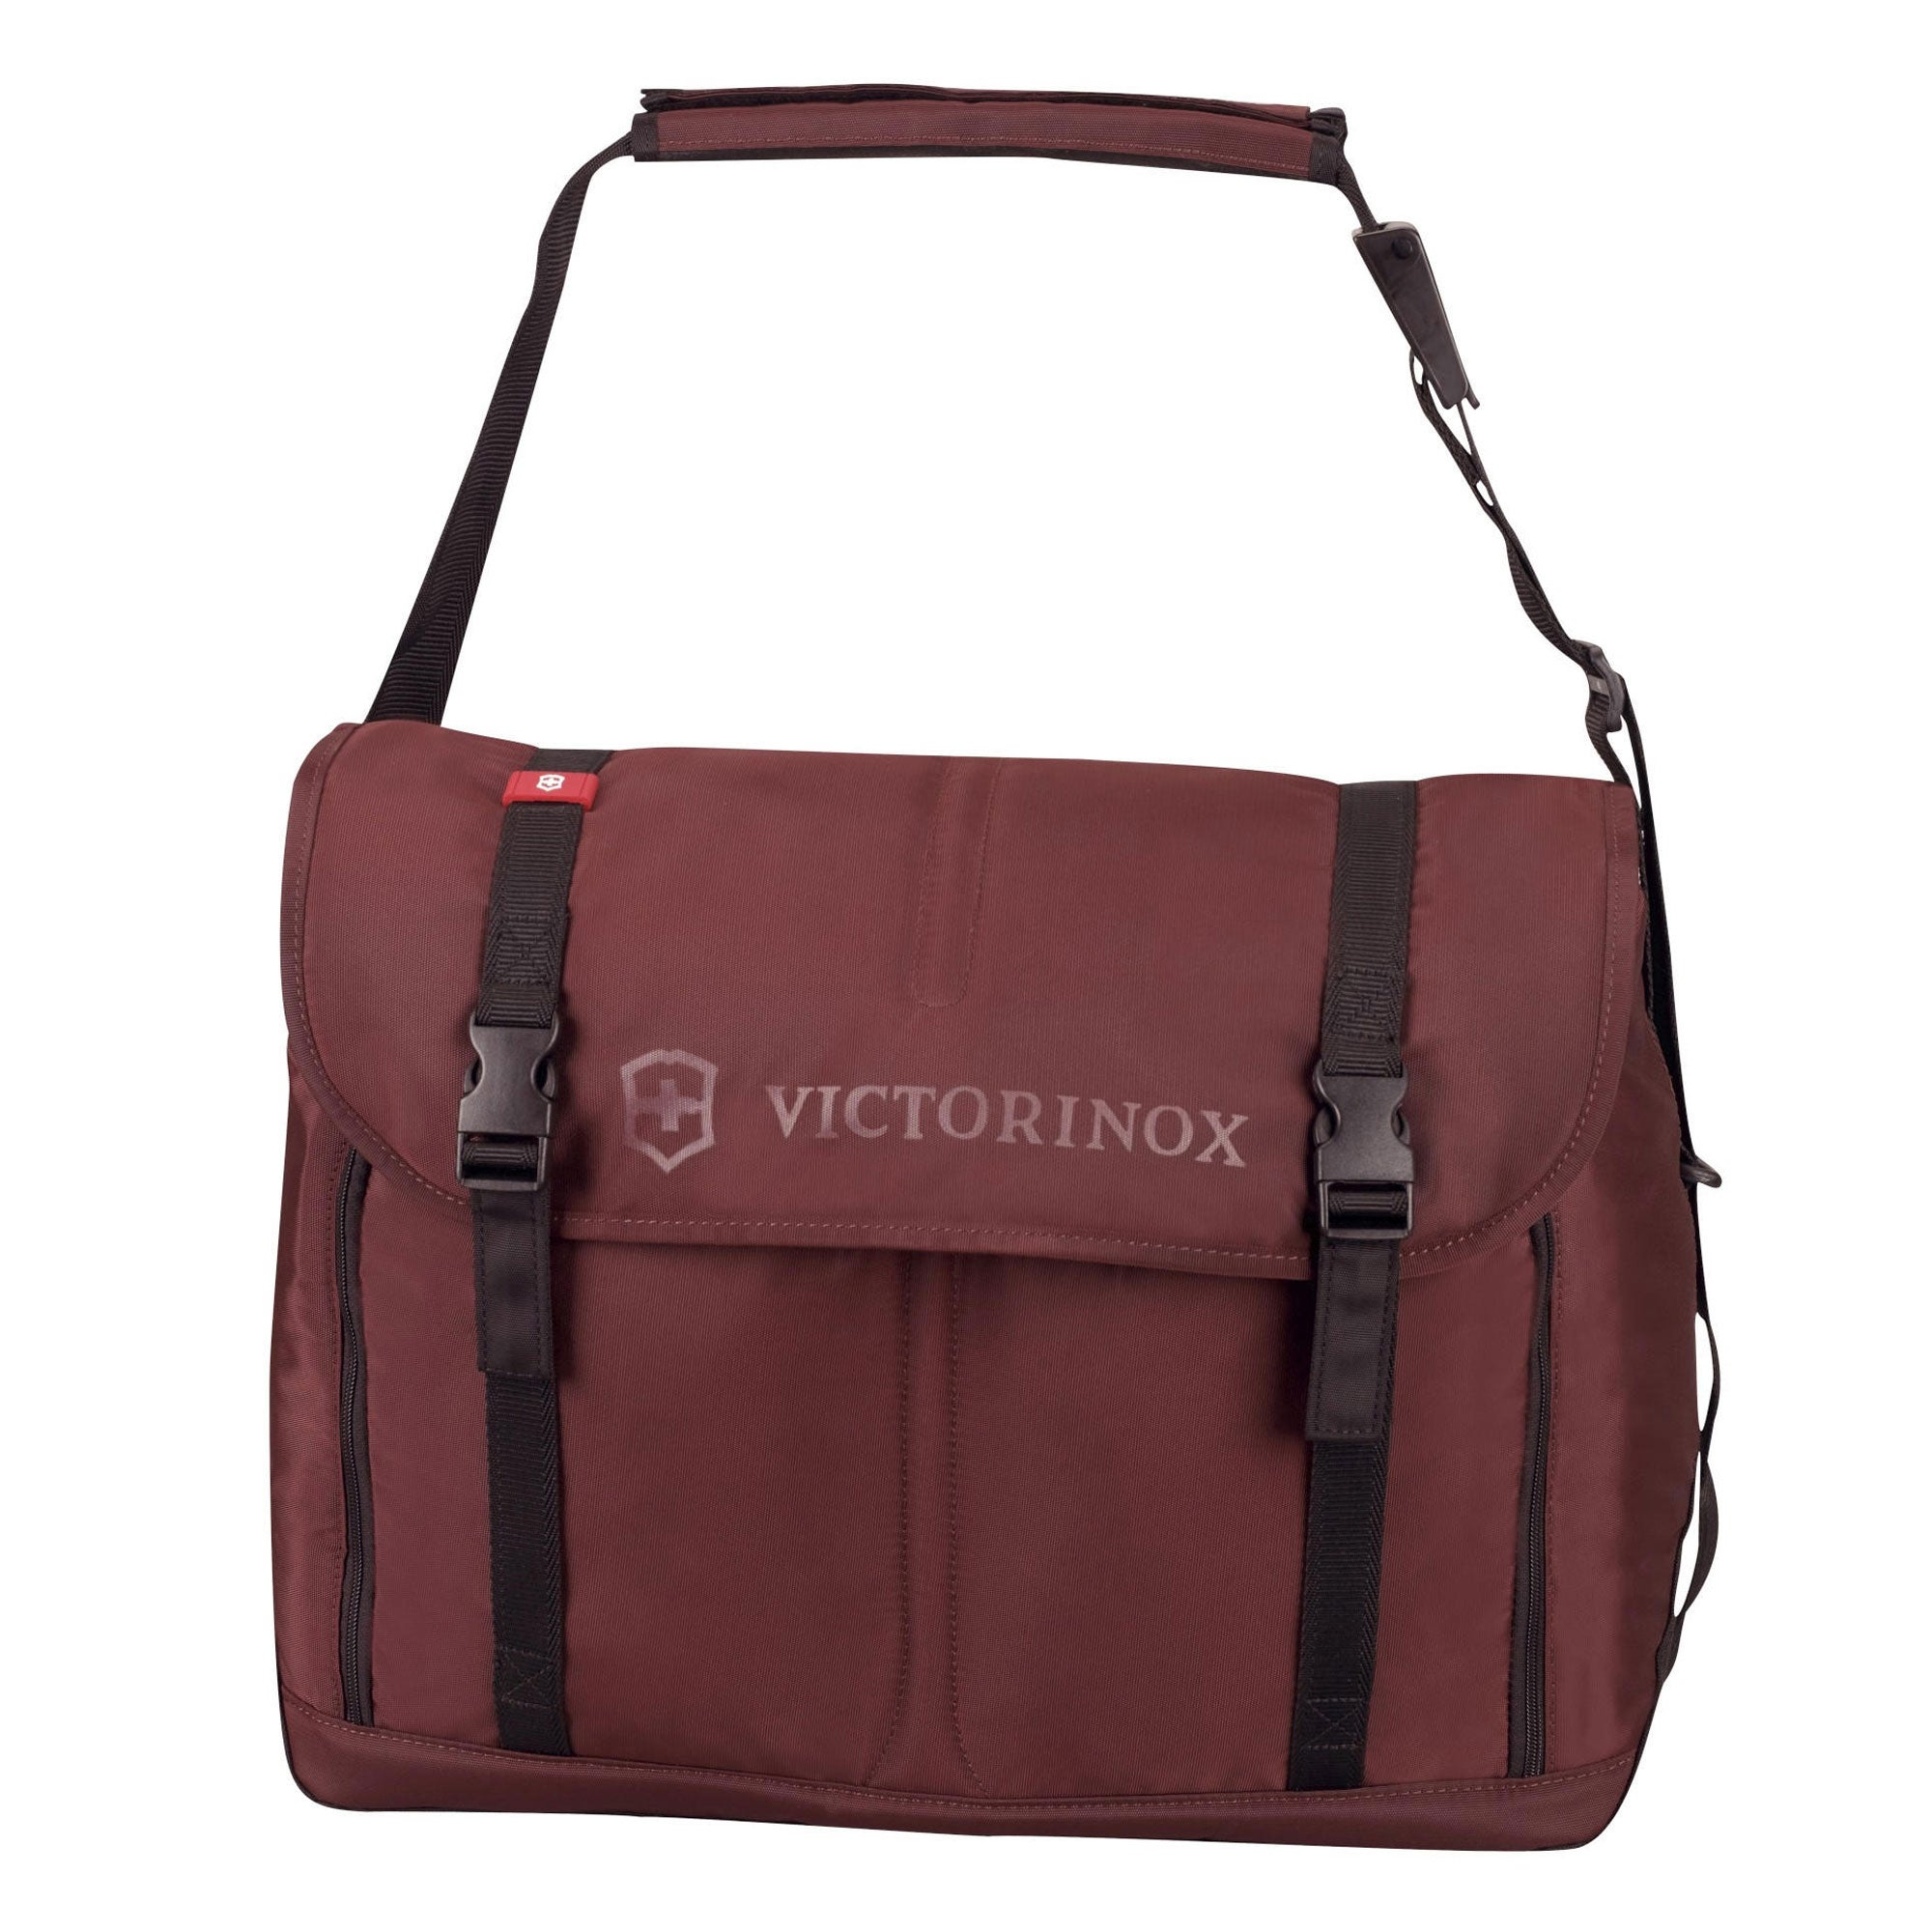 Victorinox Swiss Army Seefeld Maroon Weekender Travel Messenger Bag